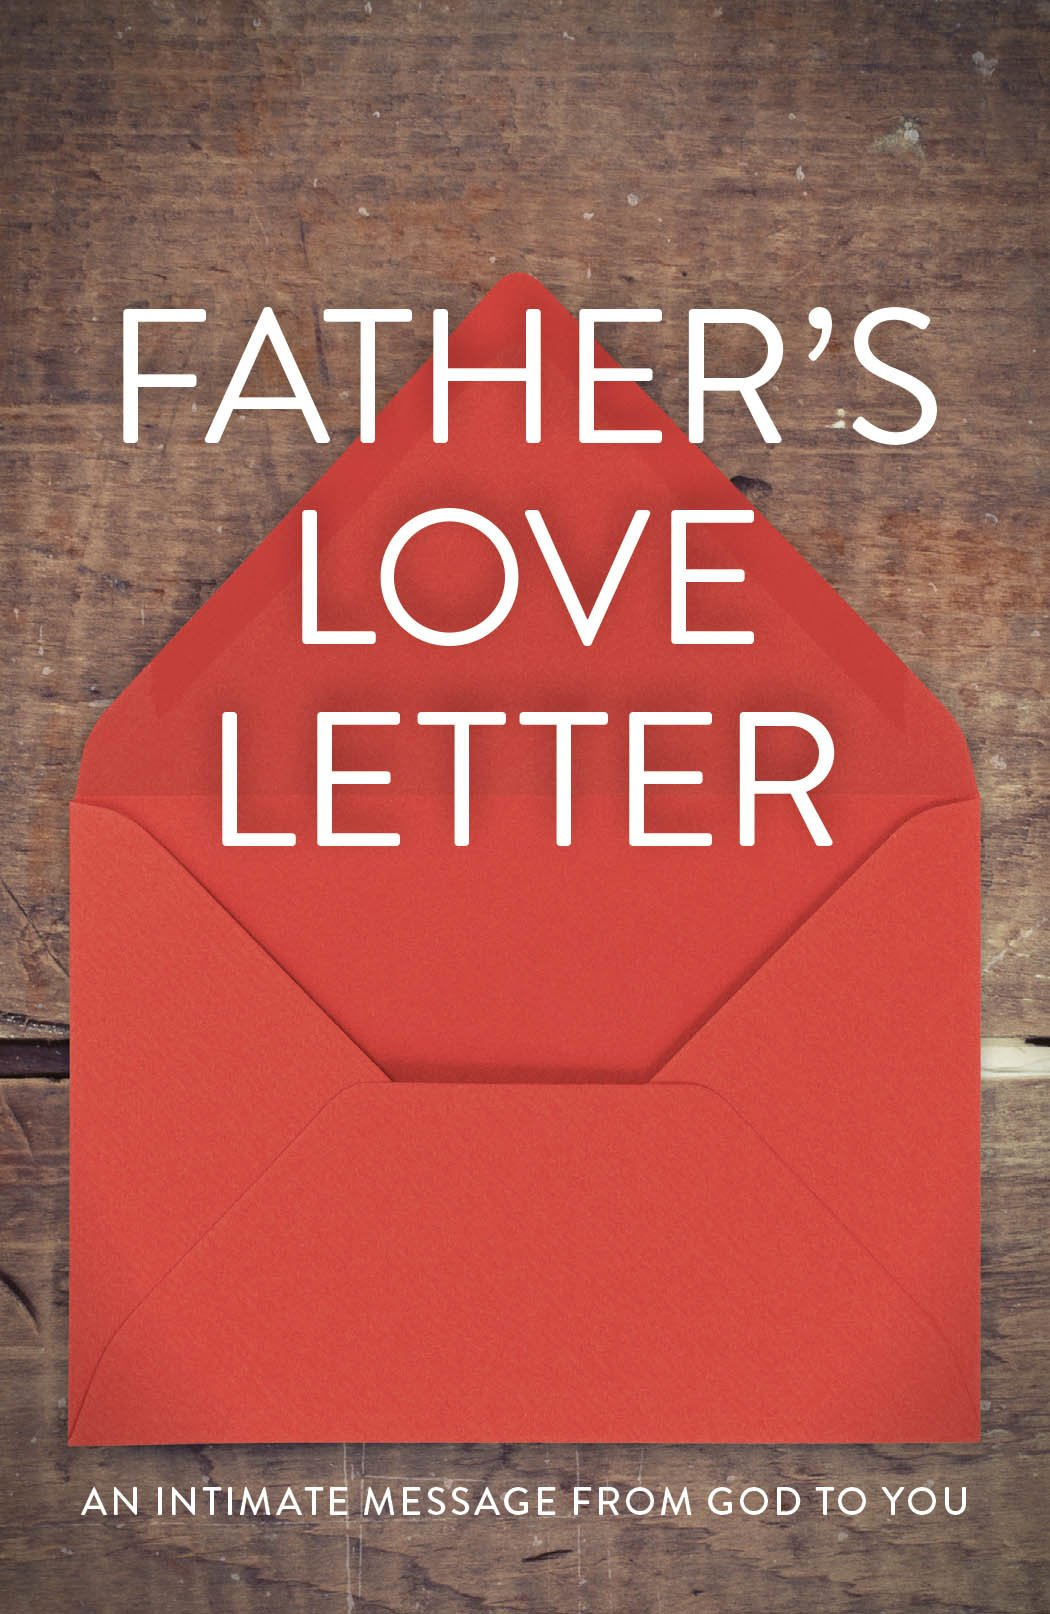 fathers love letter ats pack of 25 barry adams 9781682163436 amazoncom books